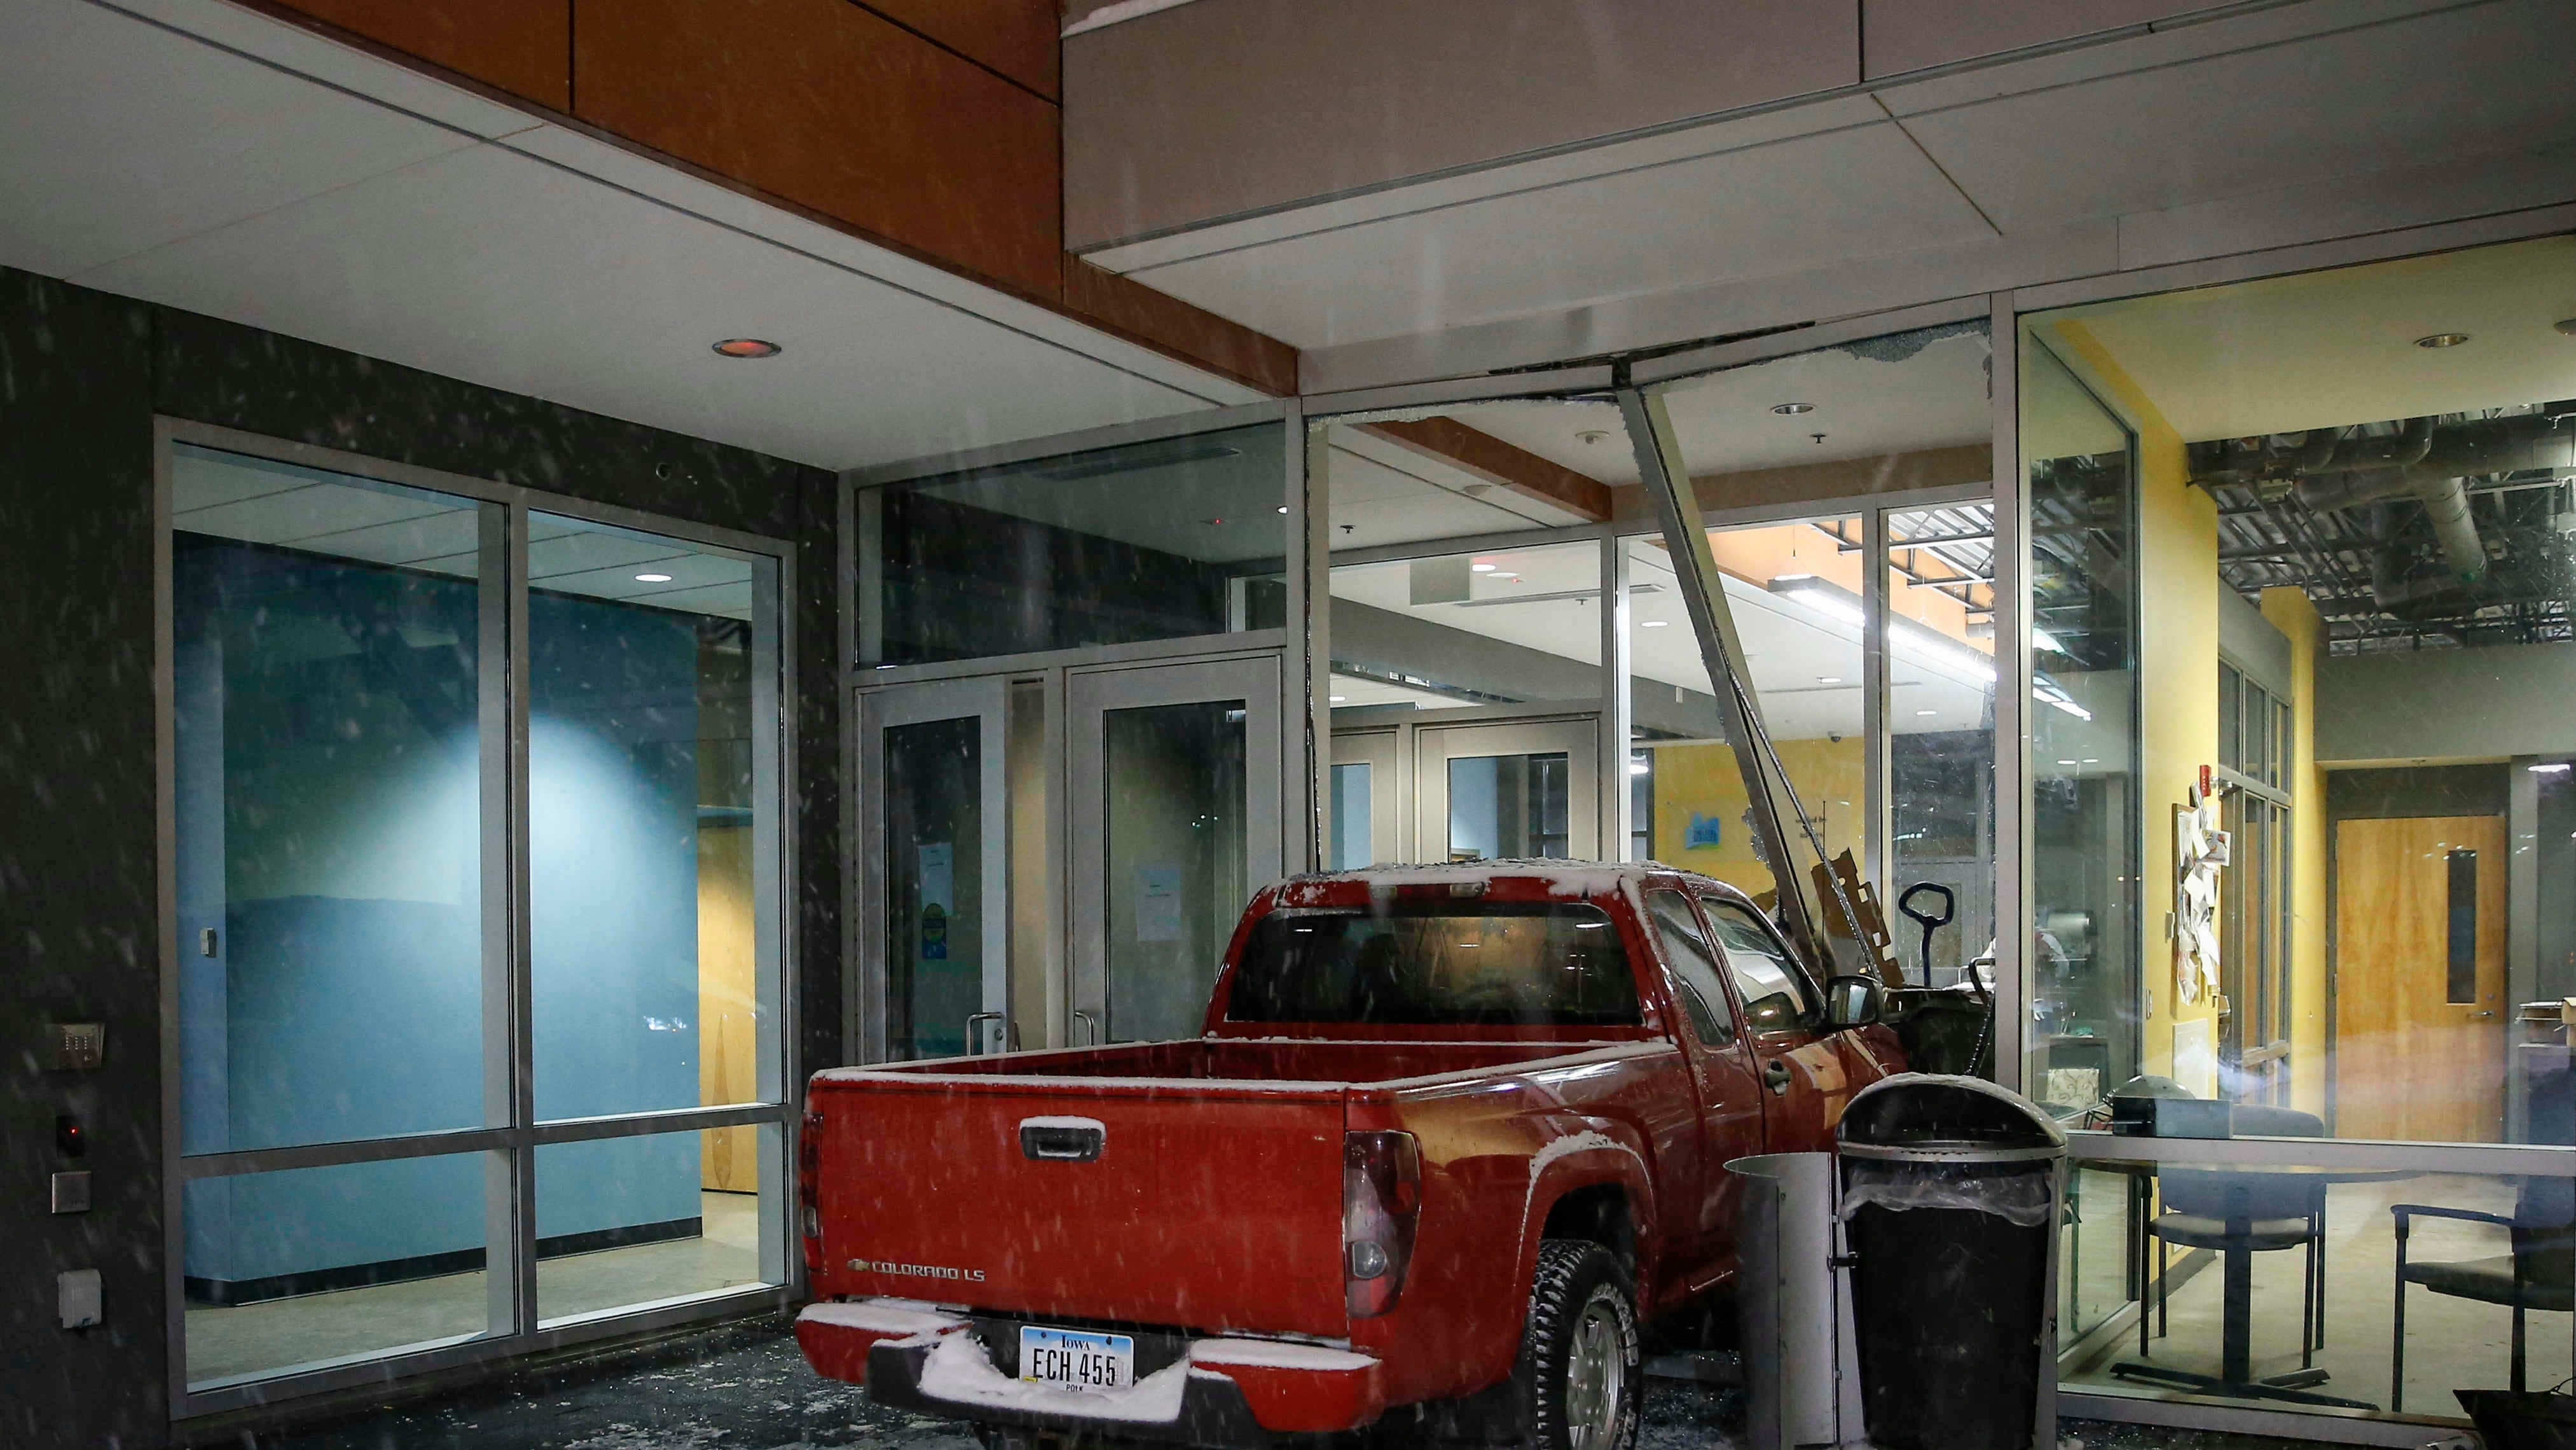 'We just heard the loudest bang': Truck crashes into Des Moines homeless shelter during snowstorm